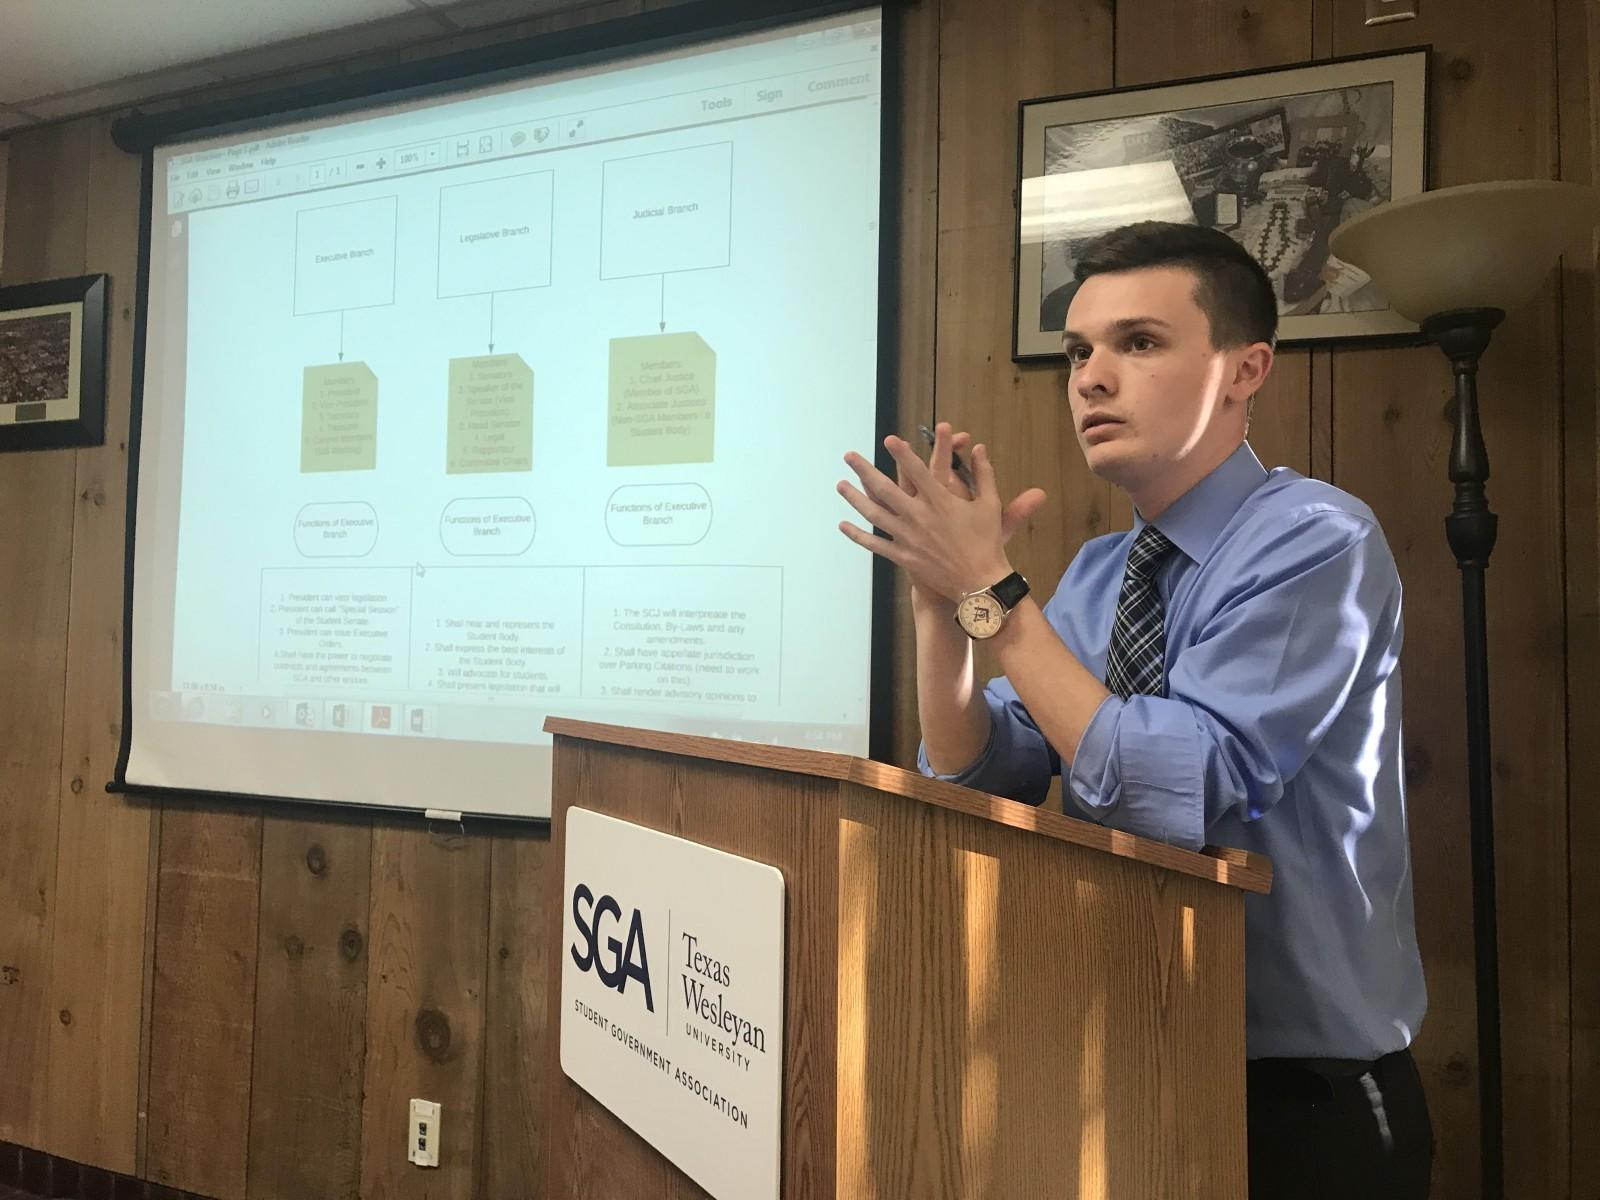 SGA discusses new constitution